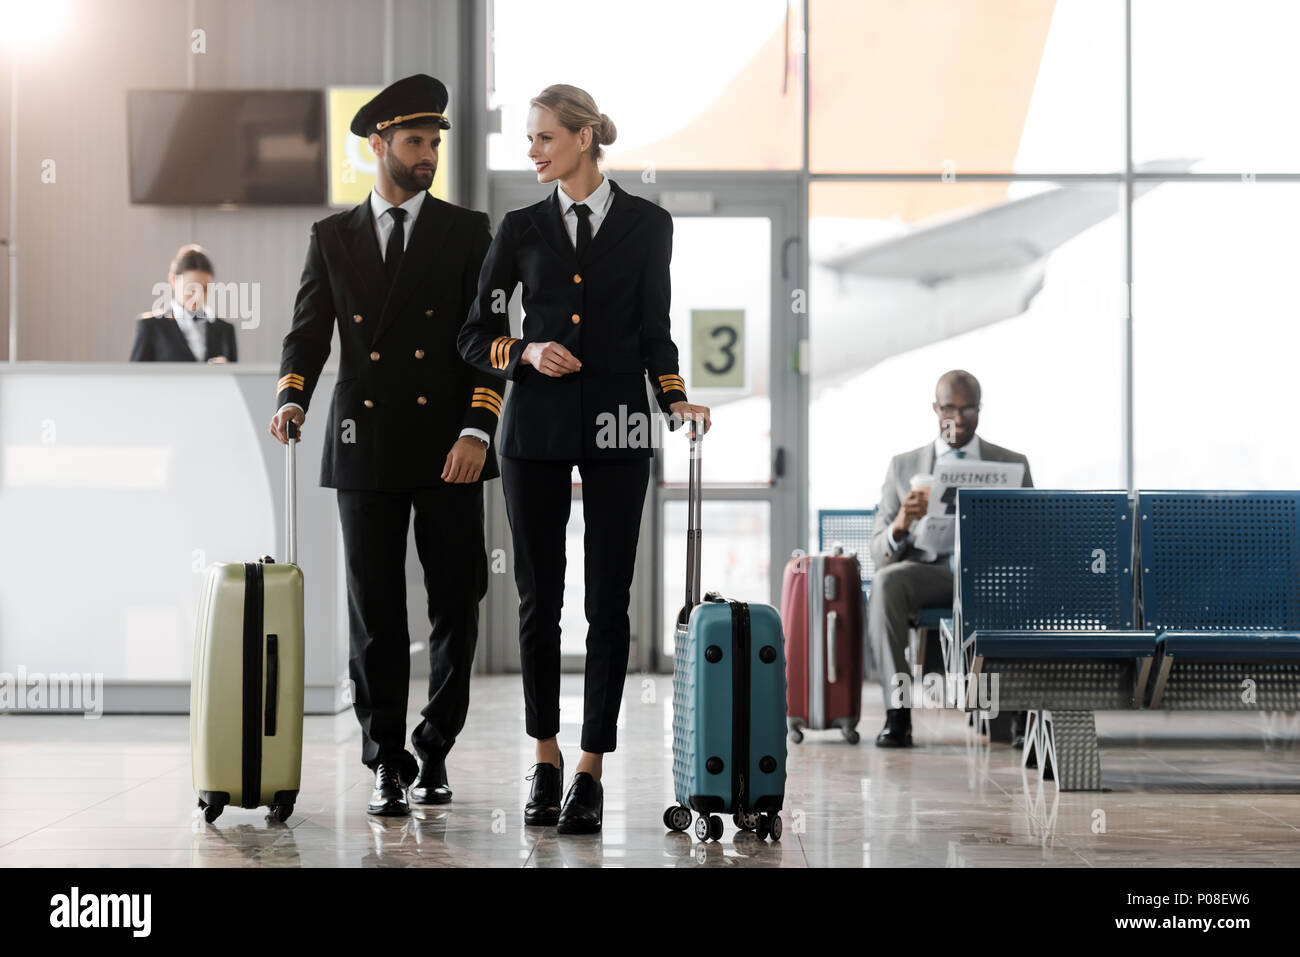 male and female pilots walking by airport lobby with suitcases - Stock Image